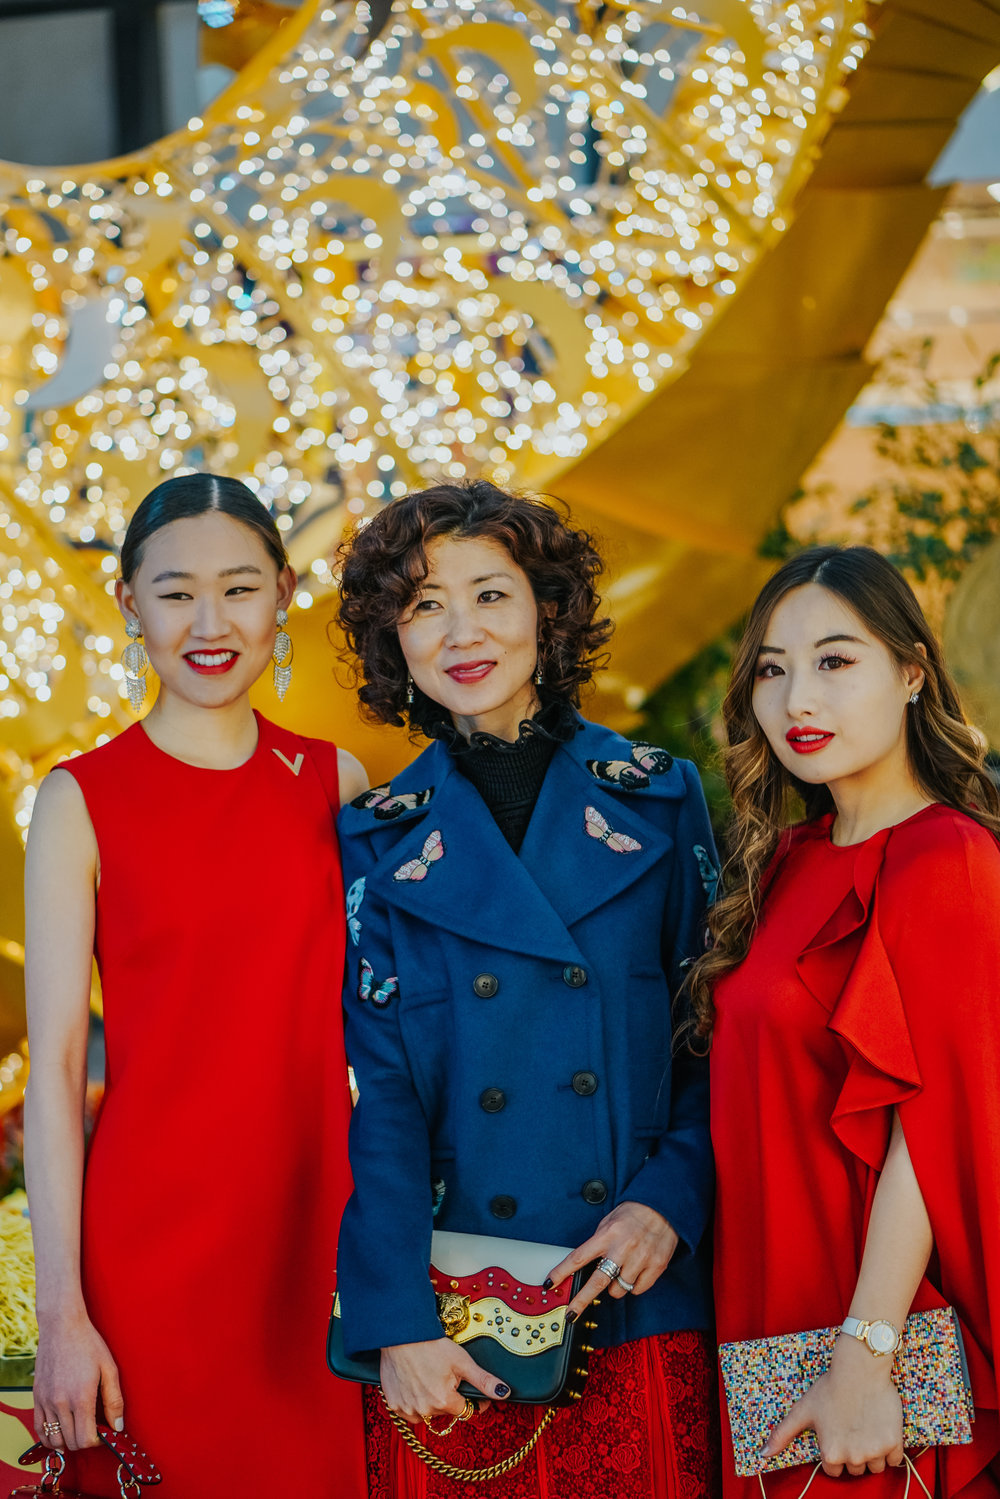 With beautiful influencer Meiling Jin and Jaime Xie